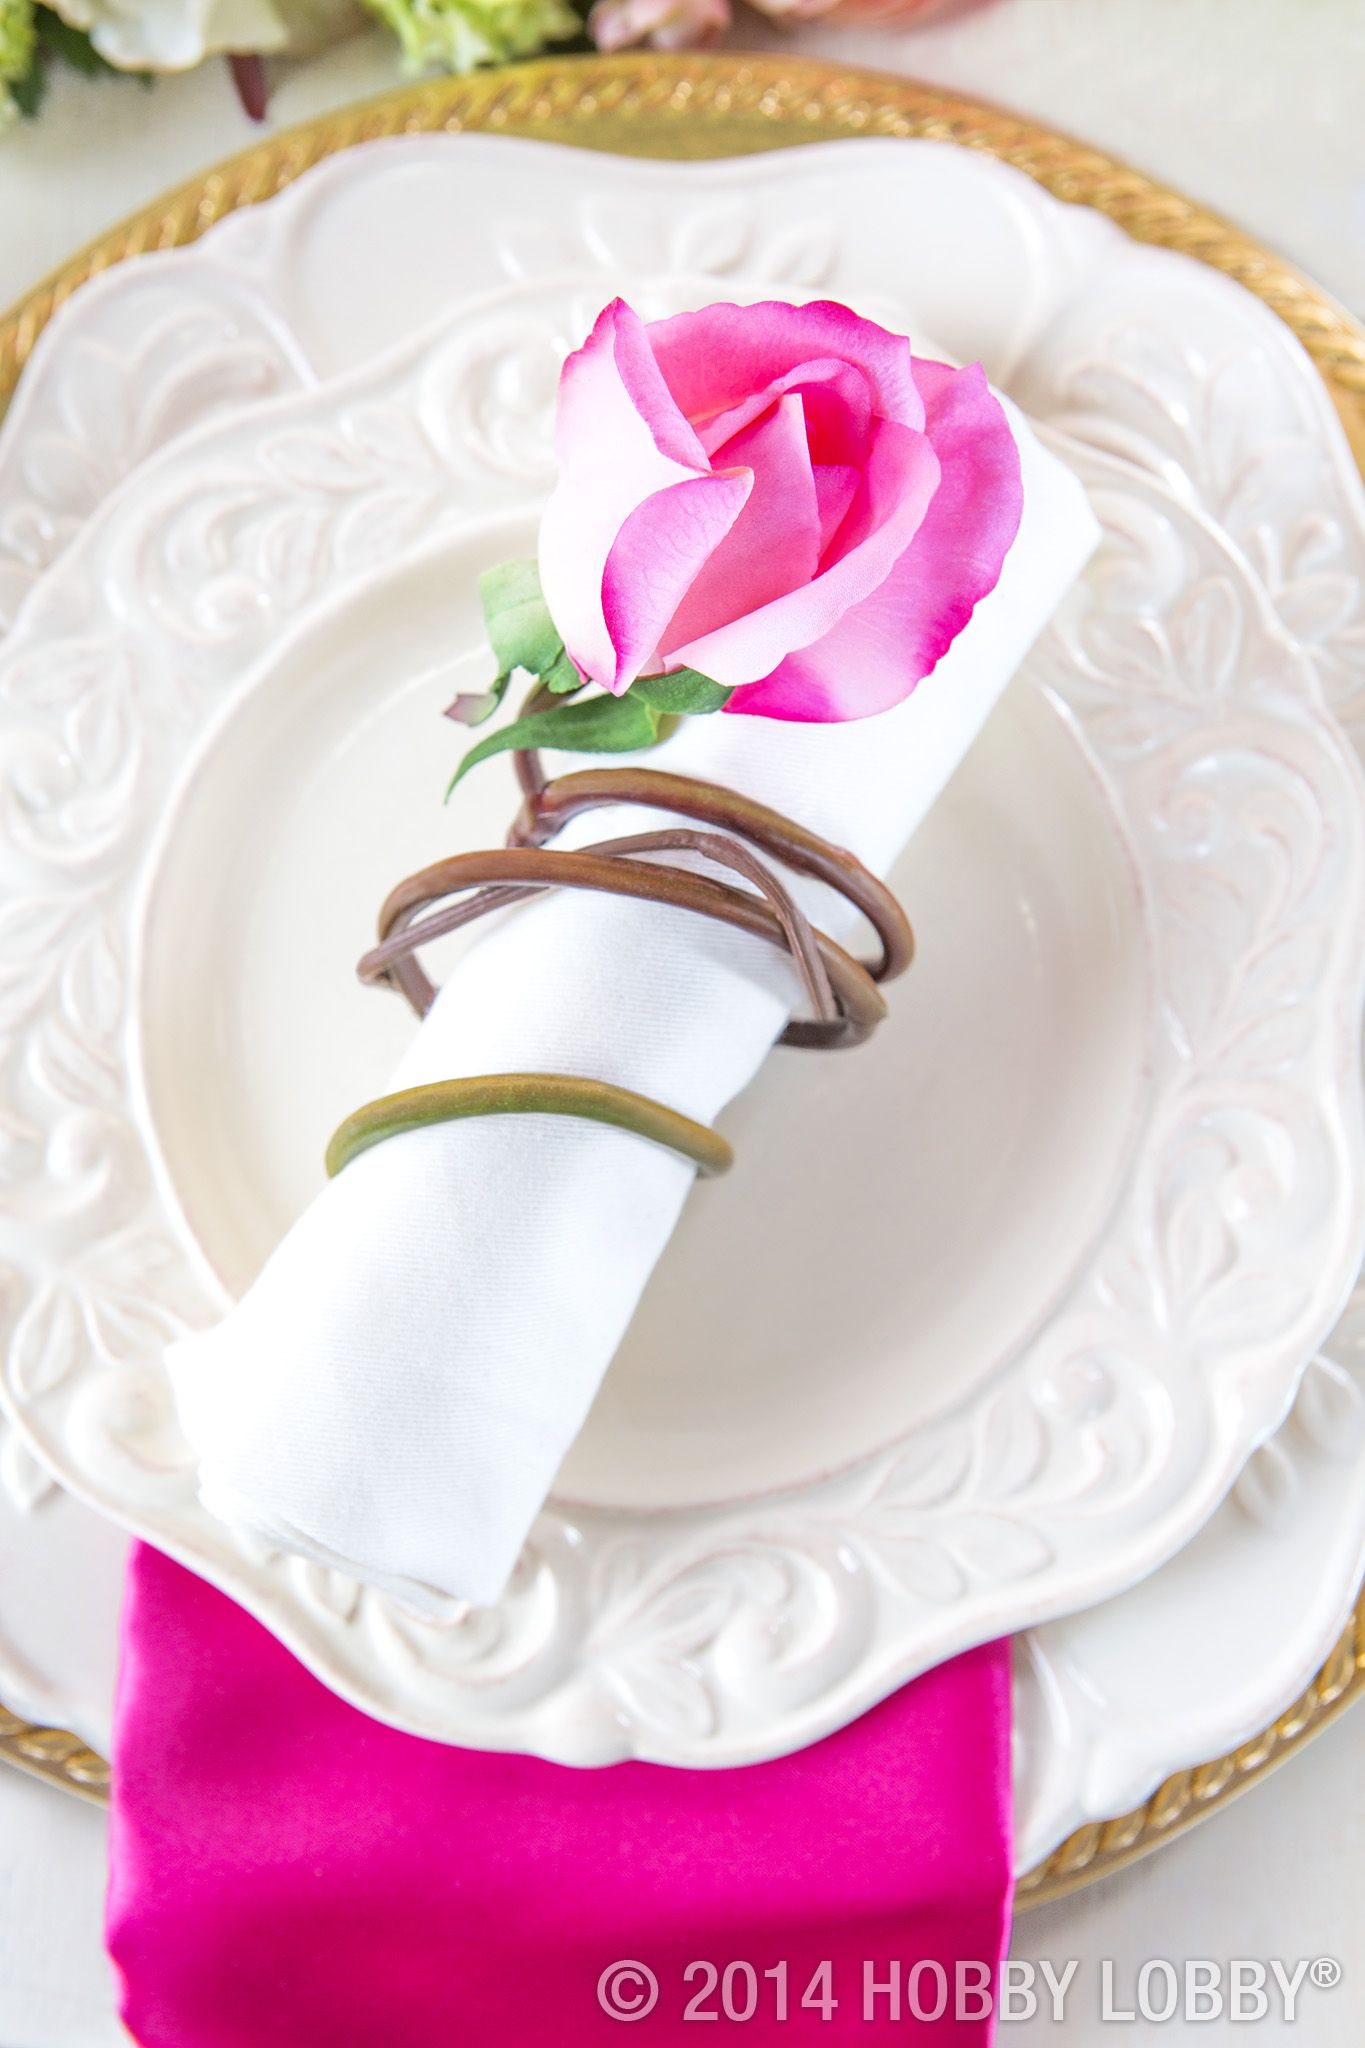 Diying Everything From The Table Runner To The Napkin Rings Is A Right As Roses Way To Make Sure This Party Is One Your Guests Wi Hobby Lobby Wedding Invitations